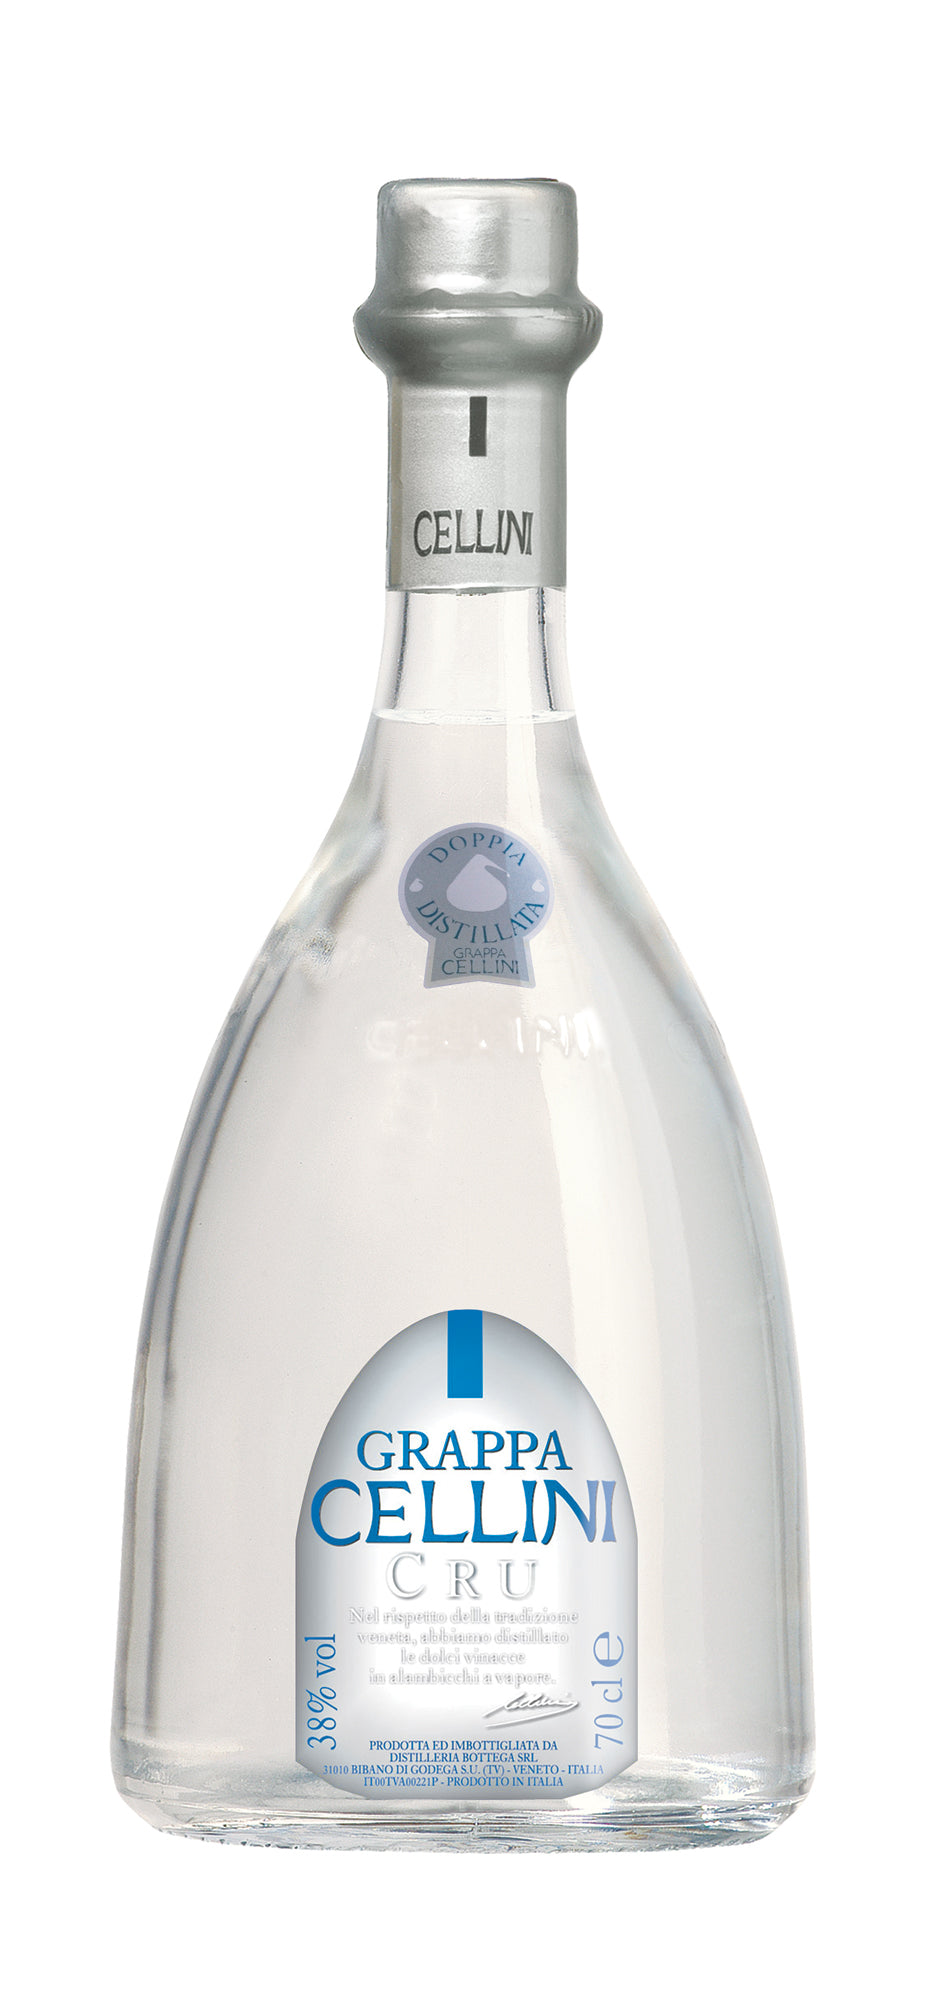 CELLINI GRAPPA Cru / 0,7l / 38%vol